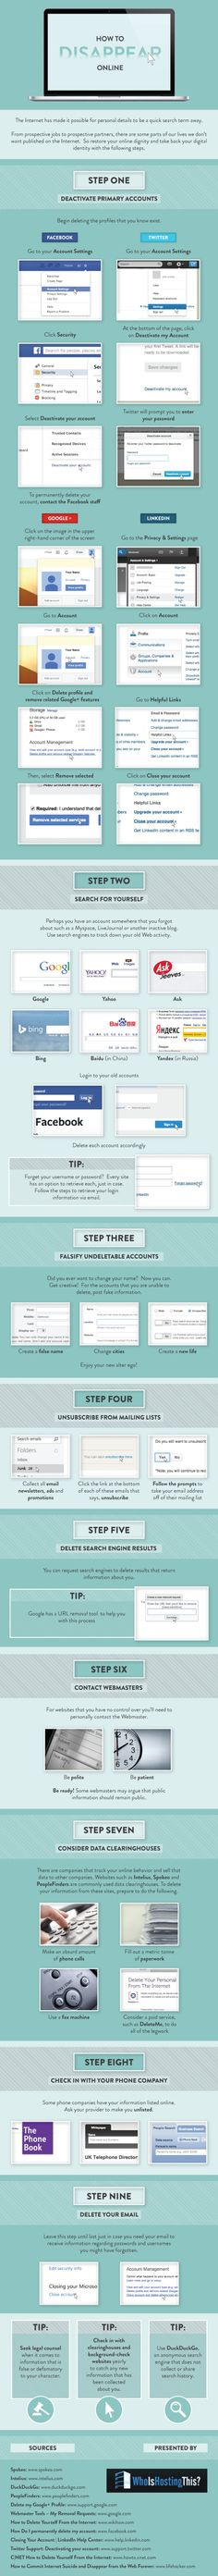 How To Delete Yourself Online | #infographic #infografía